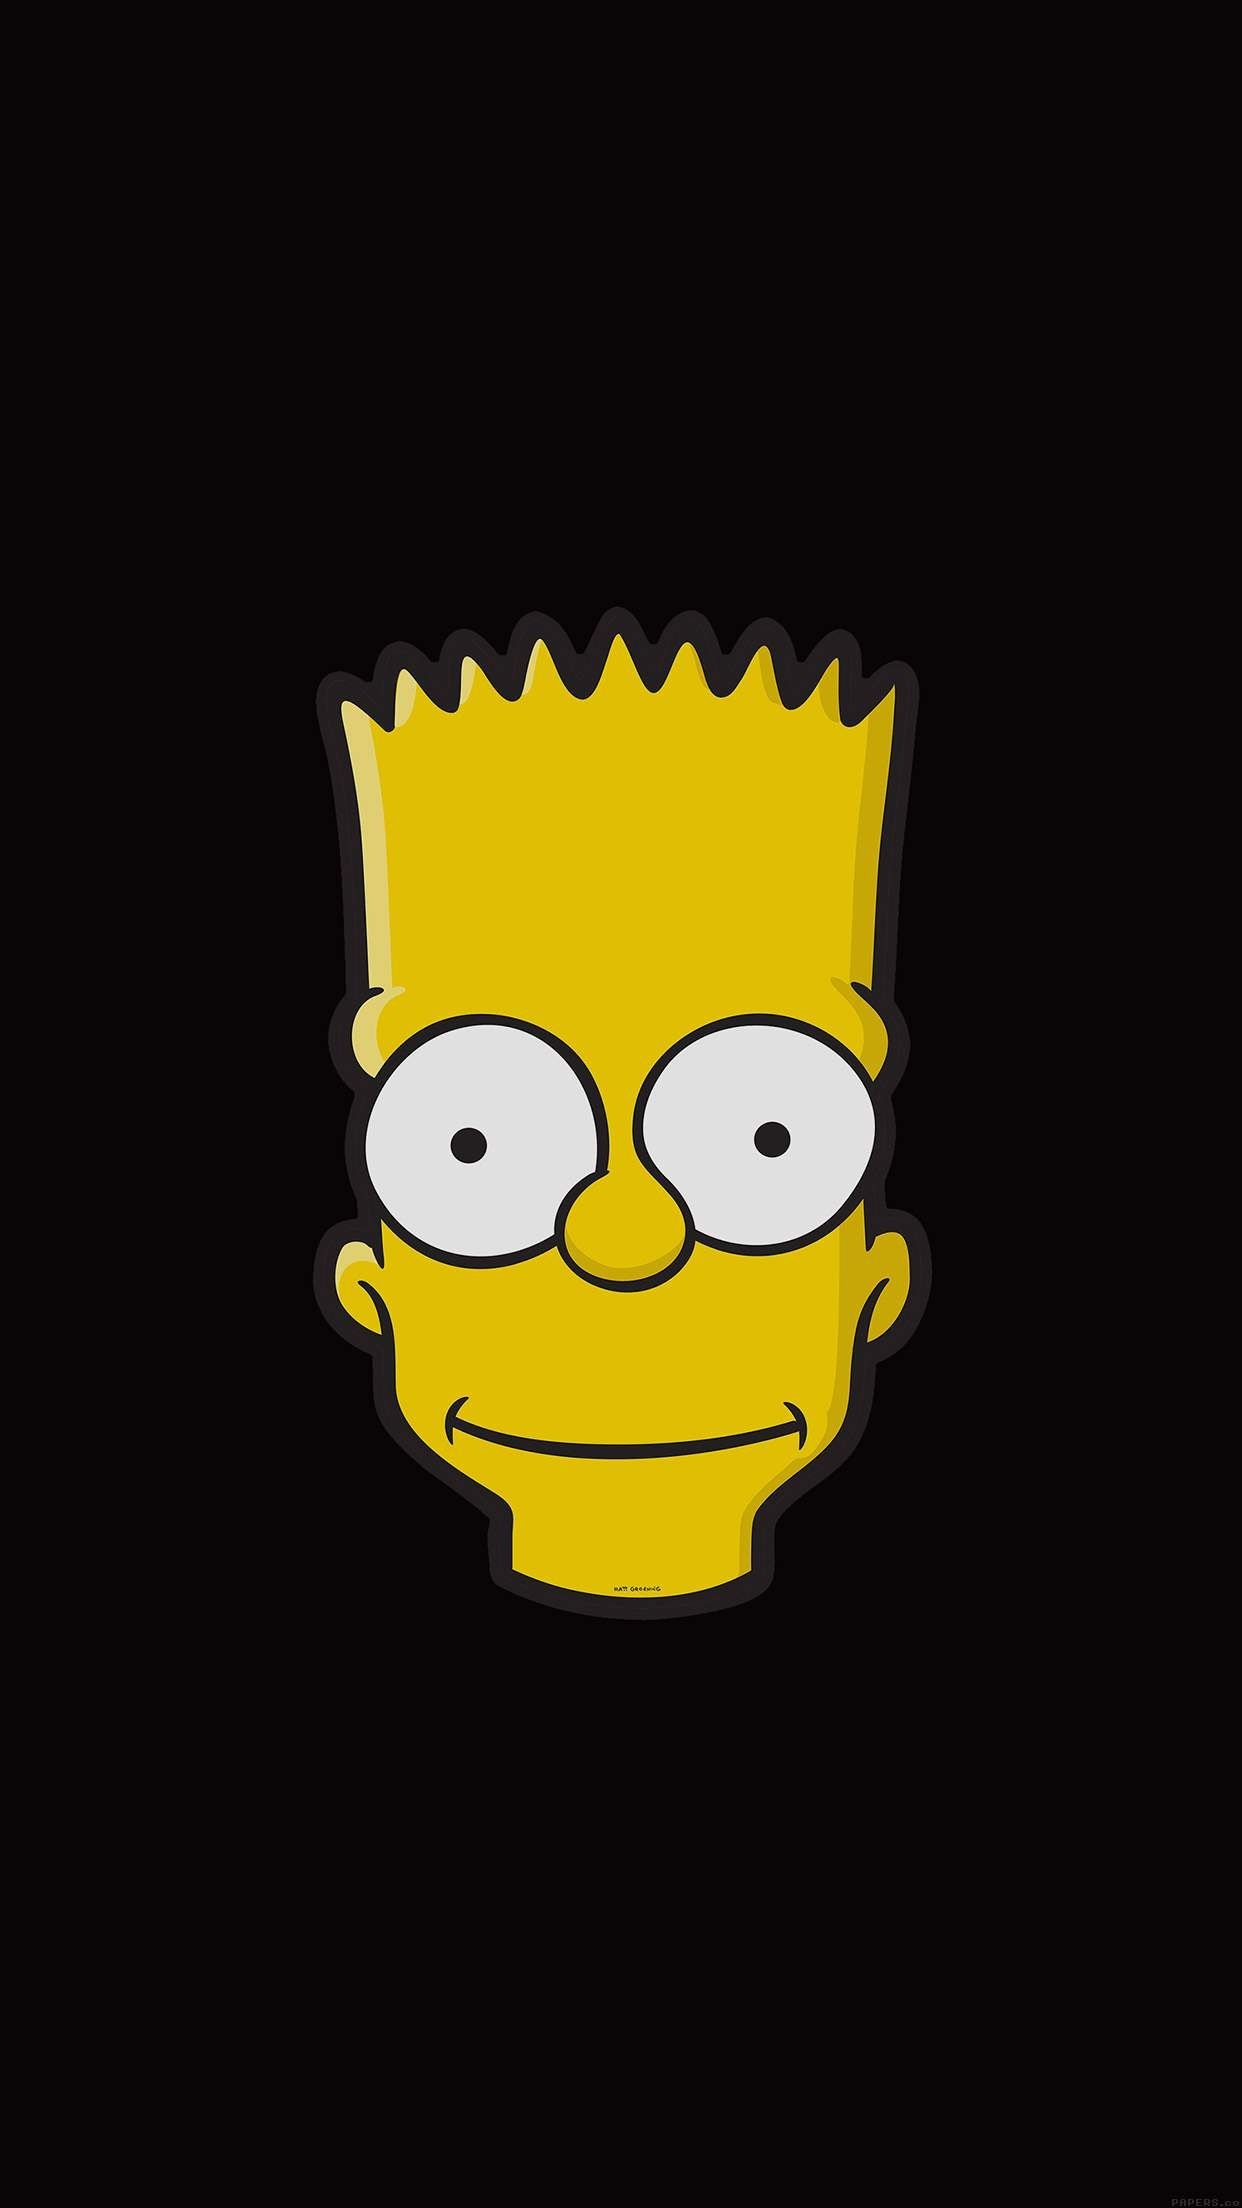 Download Mega Collection Of Cool Iphone Wallpapers Simpson Wallpaper Iphone Bart Simpson Art Simpsons Art